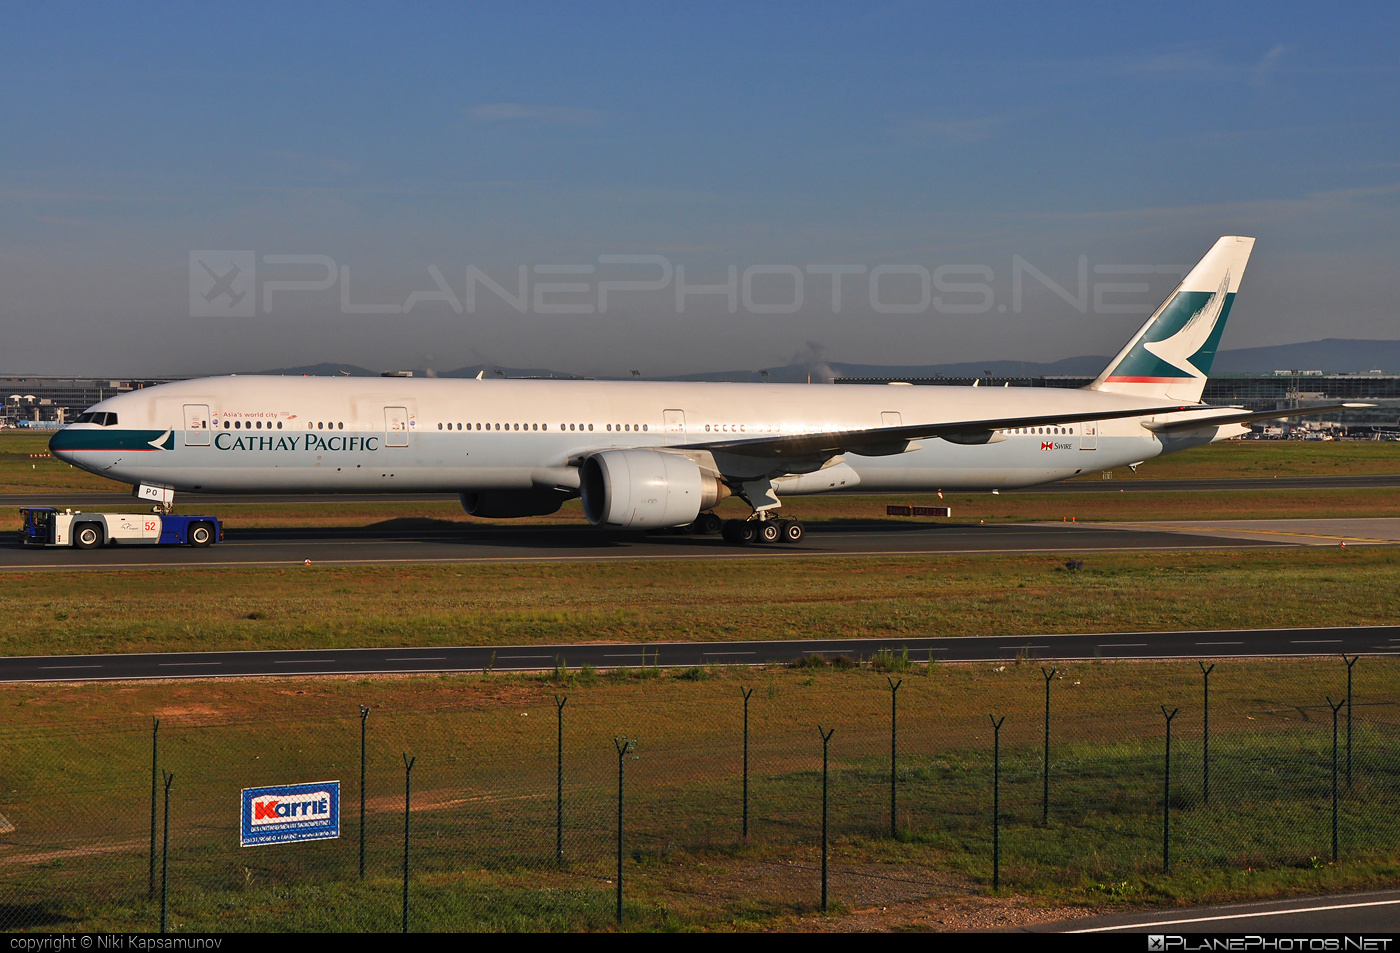 Boeing 777-300ER - B-KPO operated by Cathay Pacific Airways #b777 #b777er #boeing #boeing777 #cathaypacific #cathaypacificairways #tripleseven